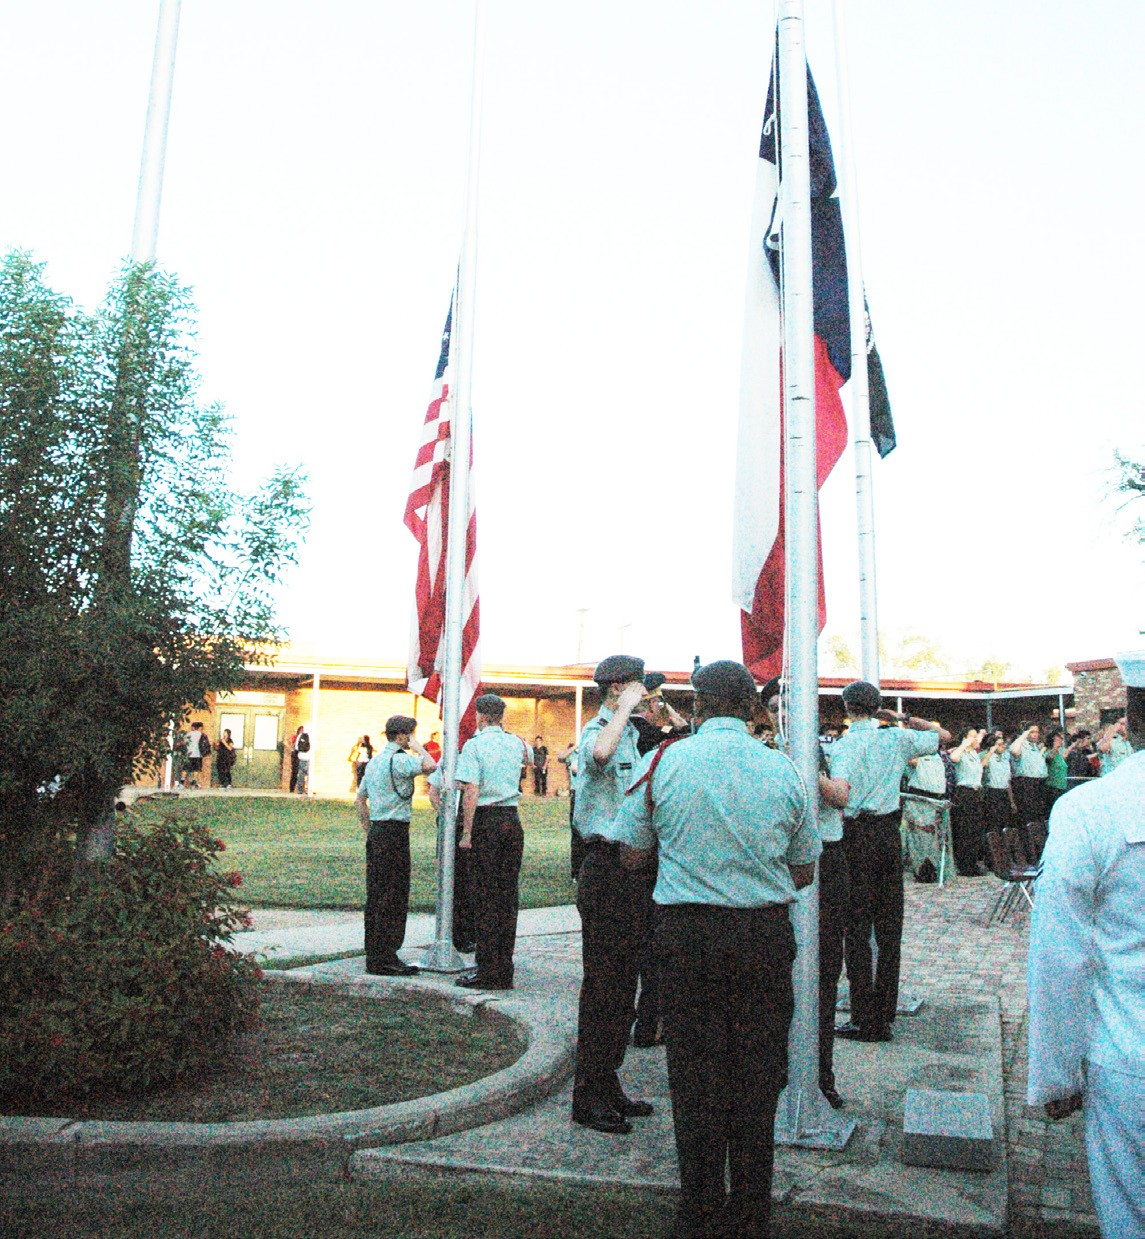 Make plans to attend a Patriot Day ceremony this Friday, September 11 at 7:15 a.m. at Pleasanton High School.